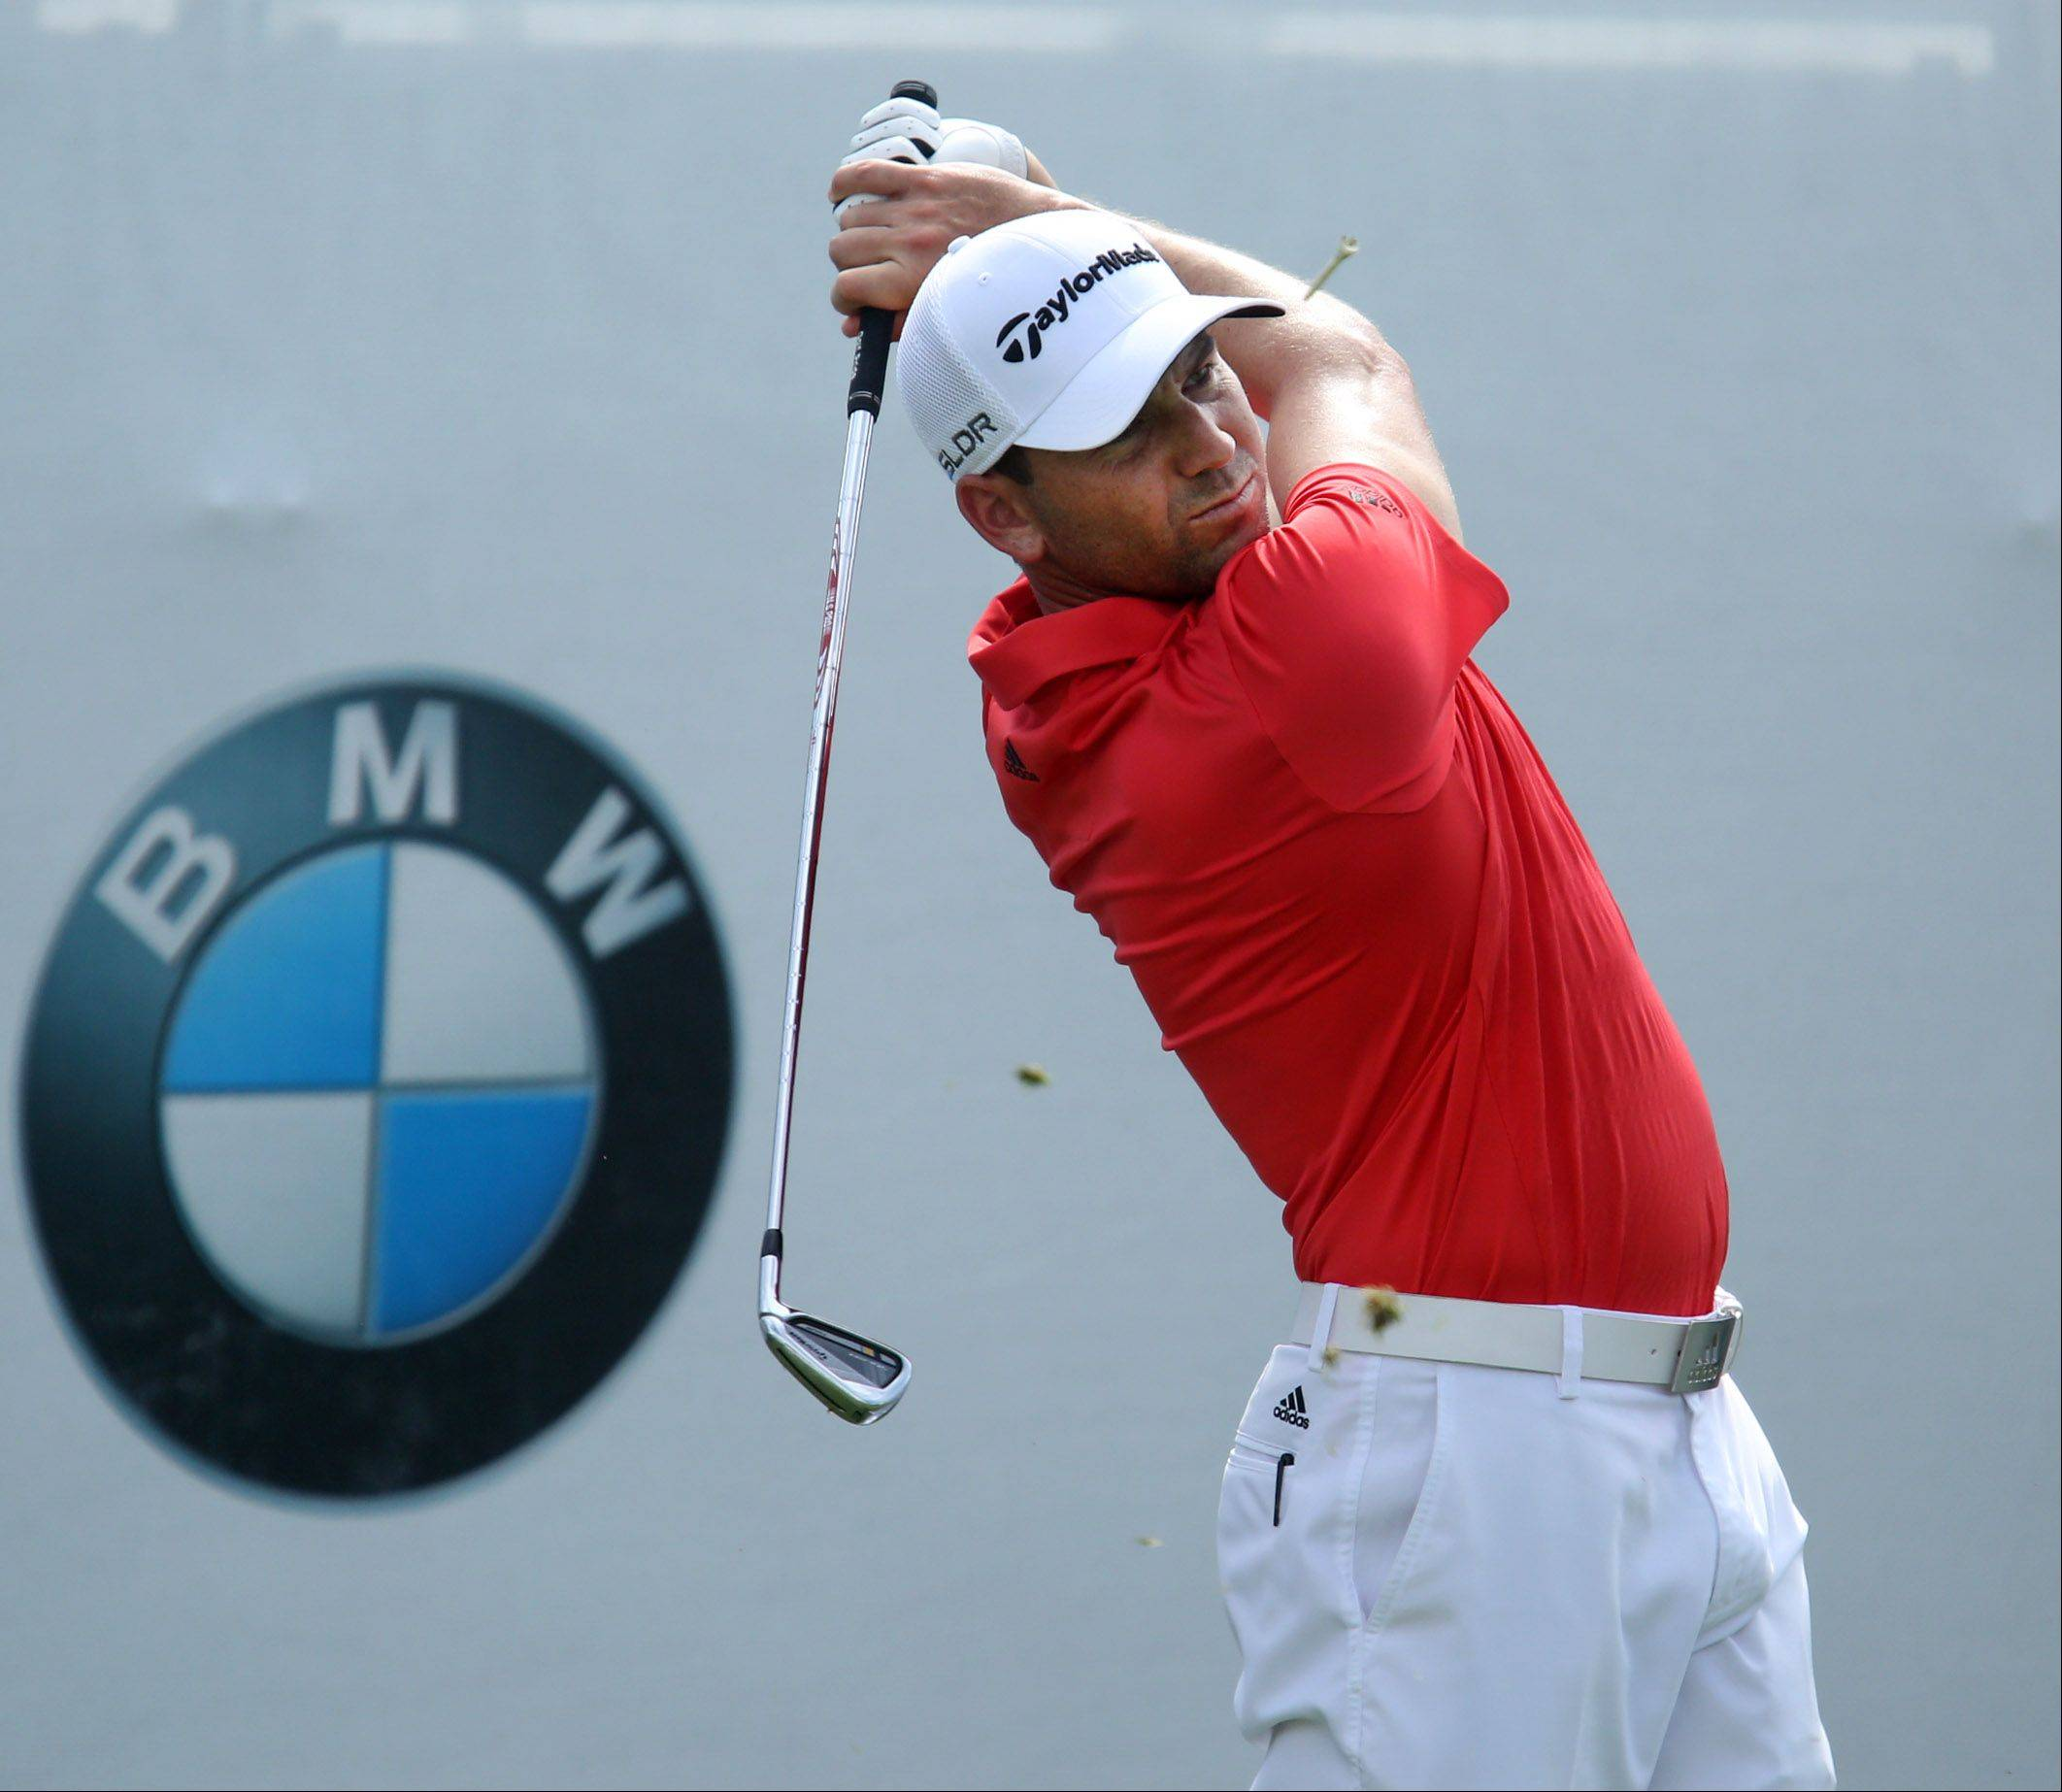 Sergio Garcia is one of 70 top players competing in the third round of the FedExCup playoffs at the BMW Championship in Lake Forest this week. The top 30 advance to the final tournament in Atlanta.